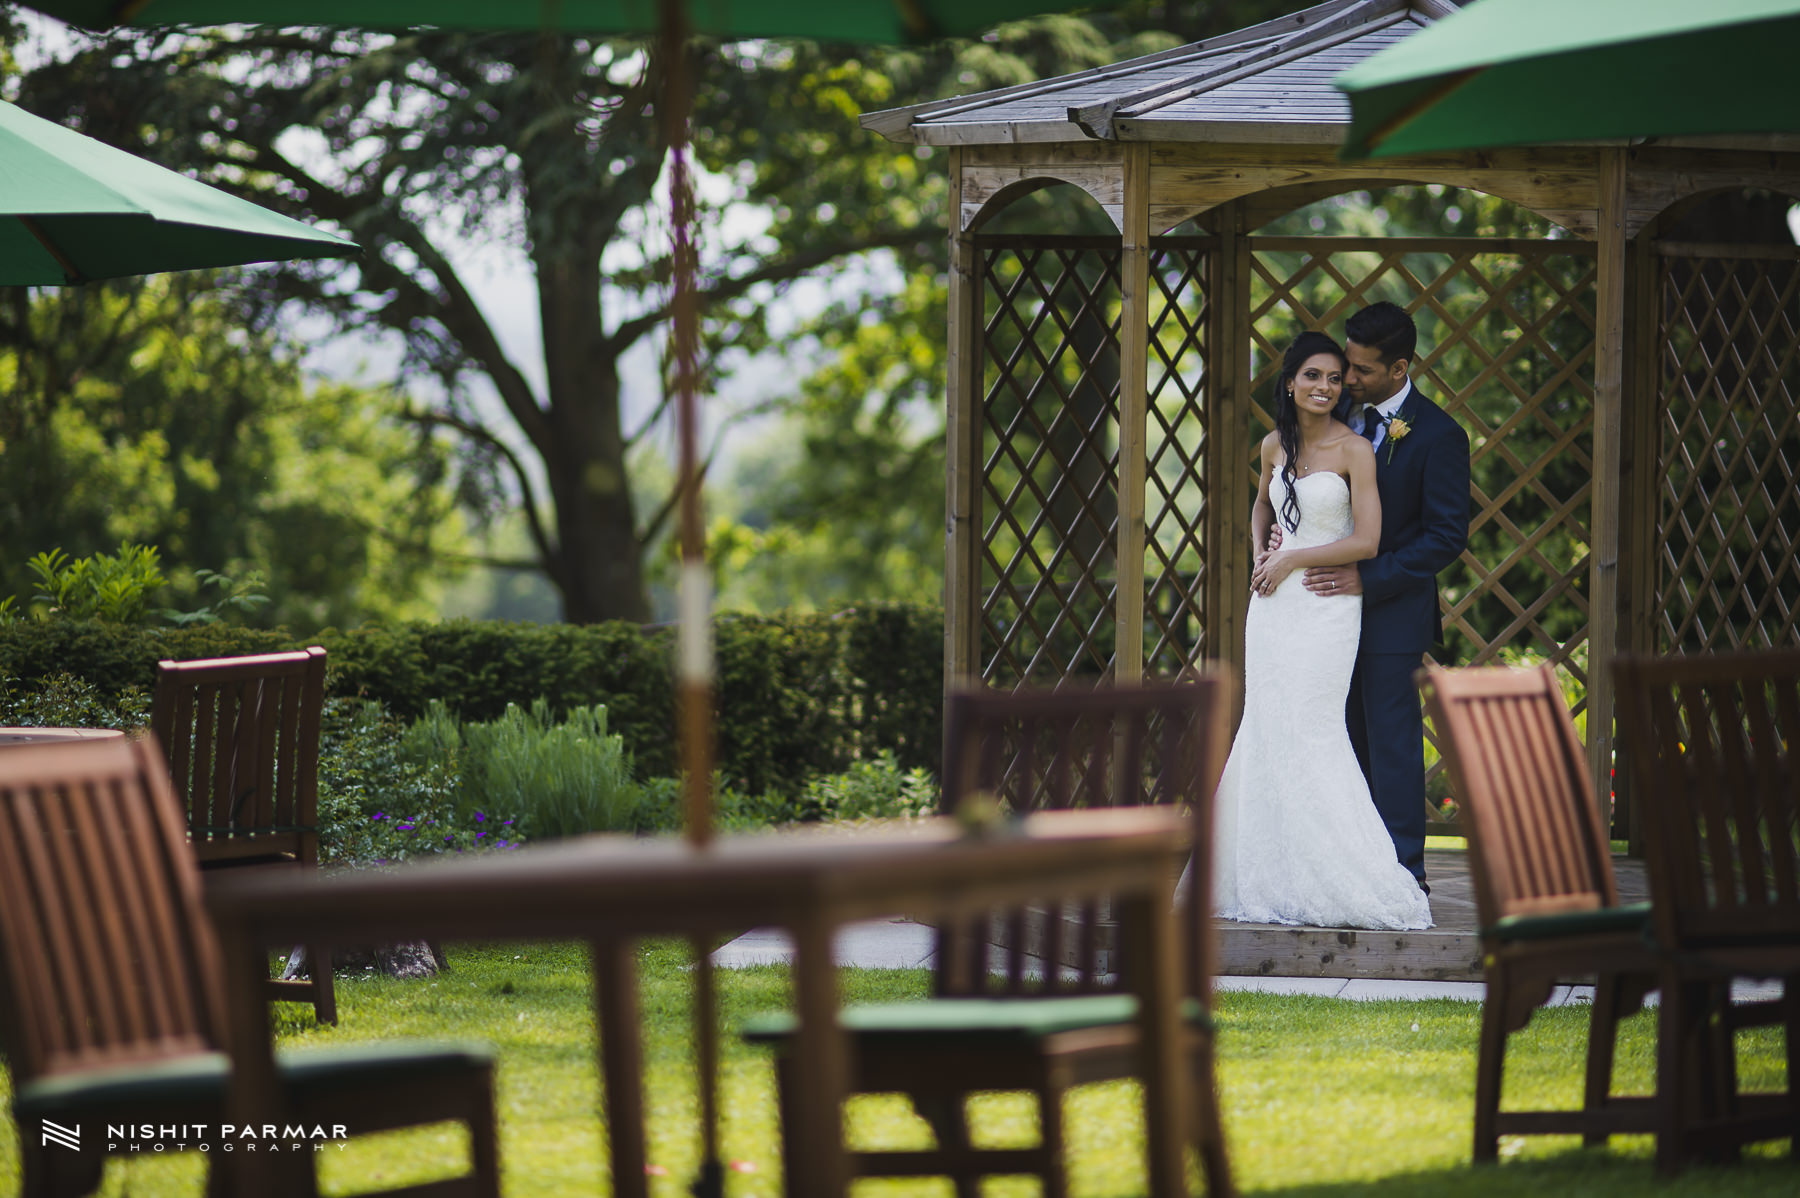 Civil Wedding Laura Ashley Manor Elstree London Wedding Photographer - bride and groom portrait in landscaped garden veranda